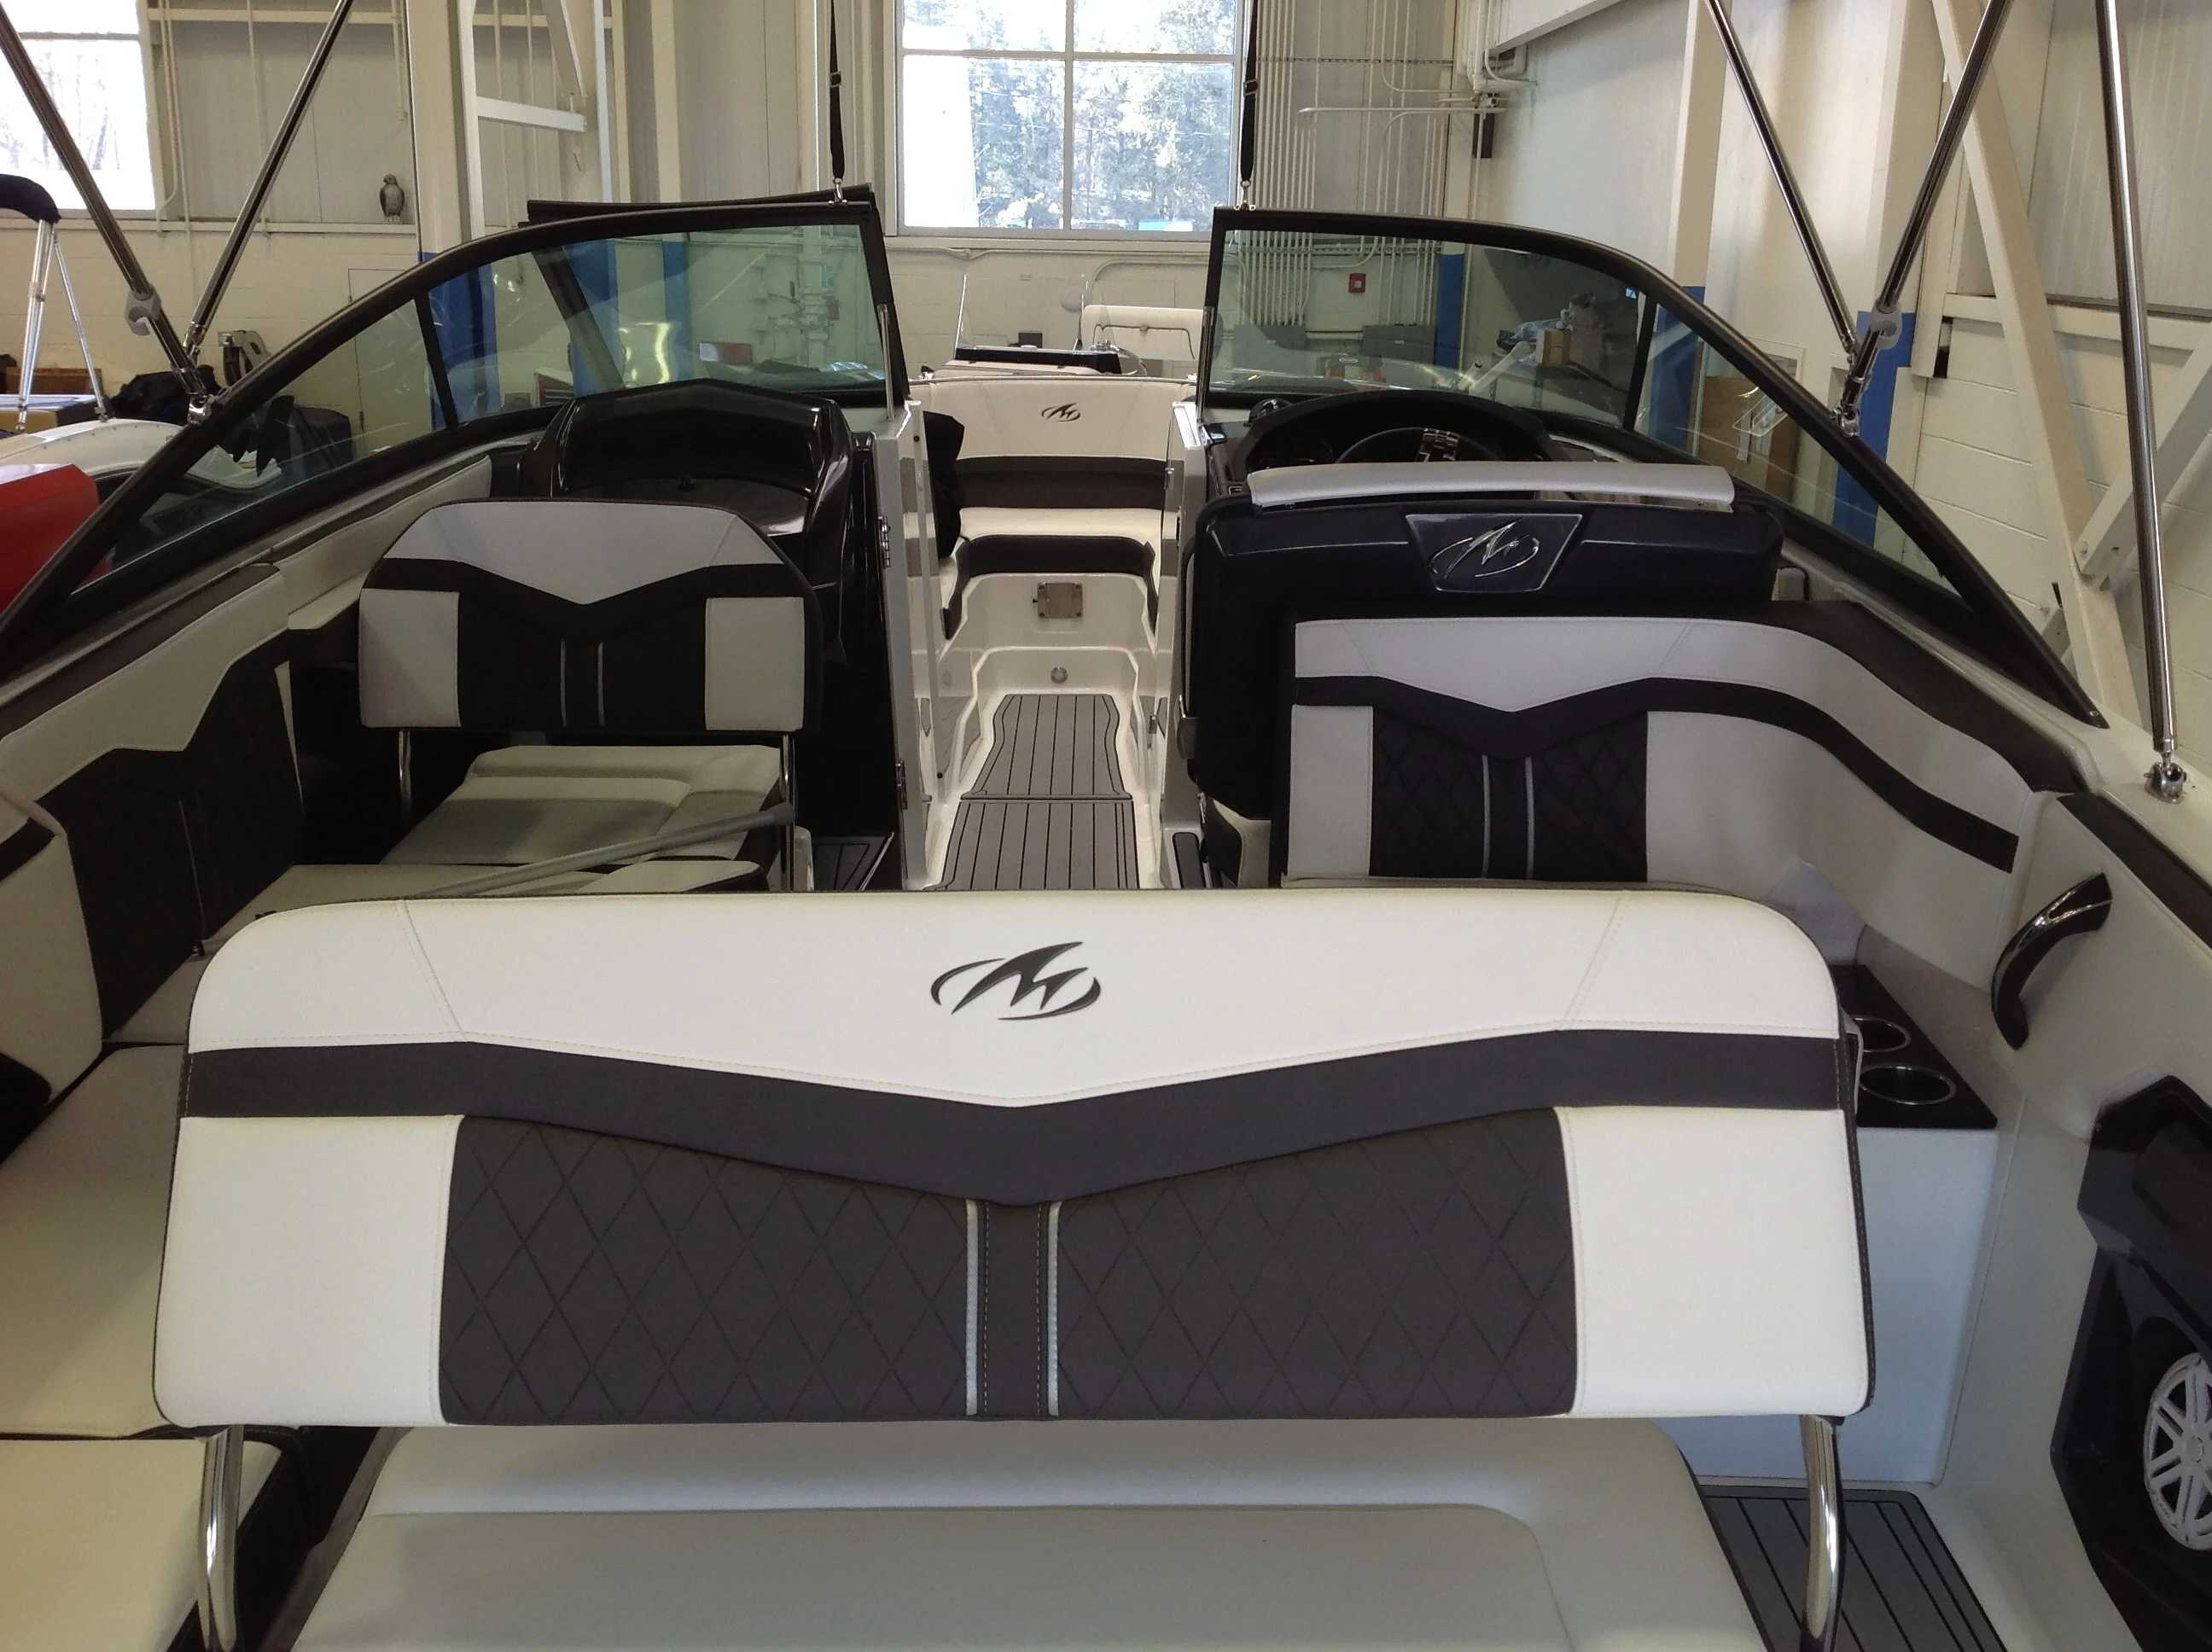 2022 Monterey boat for sale, model of the boat is 258SS & Image # 14 of 18